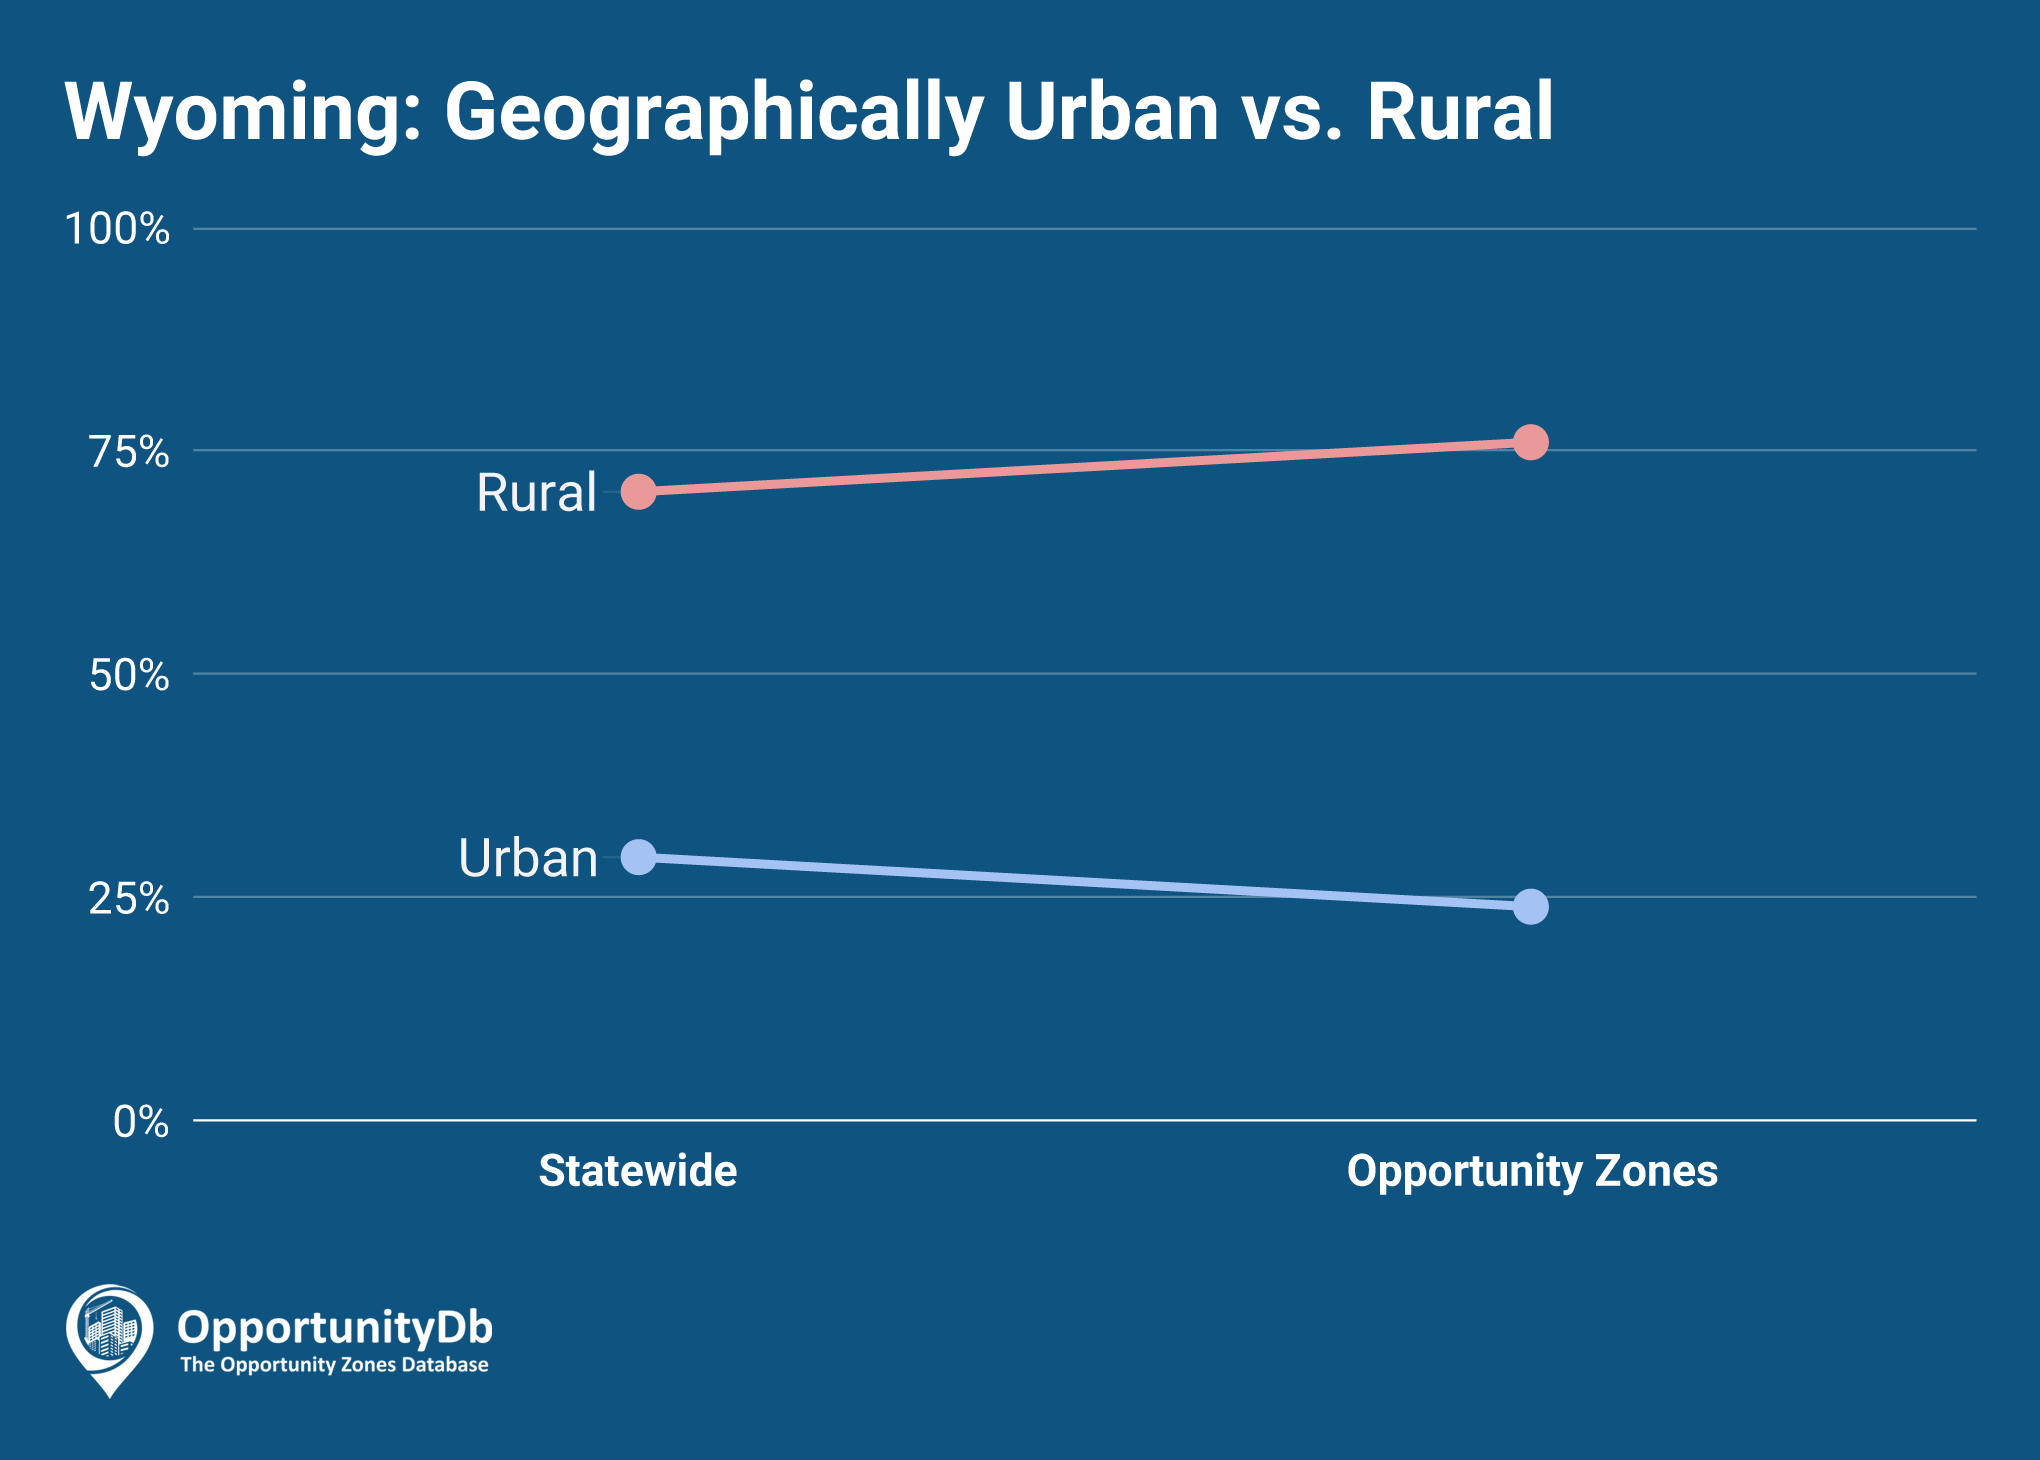 Urban vs. Rural in Wyoming Opportunity Zones